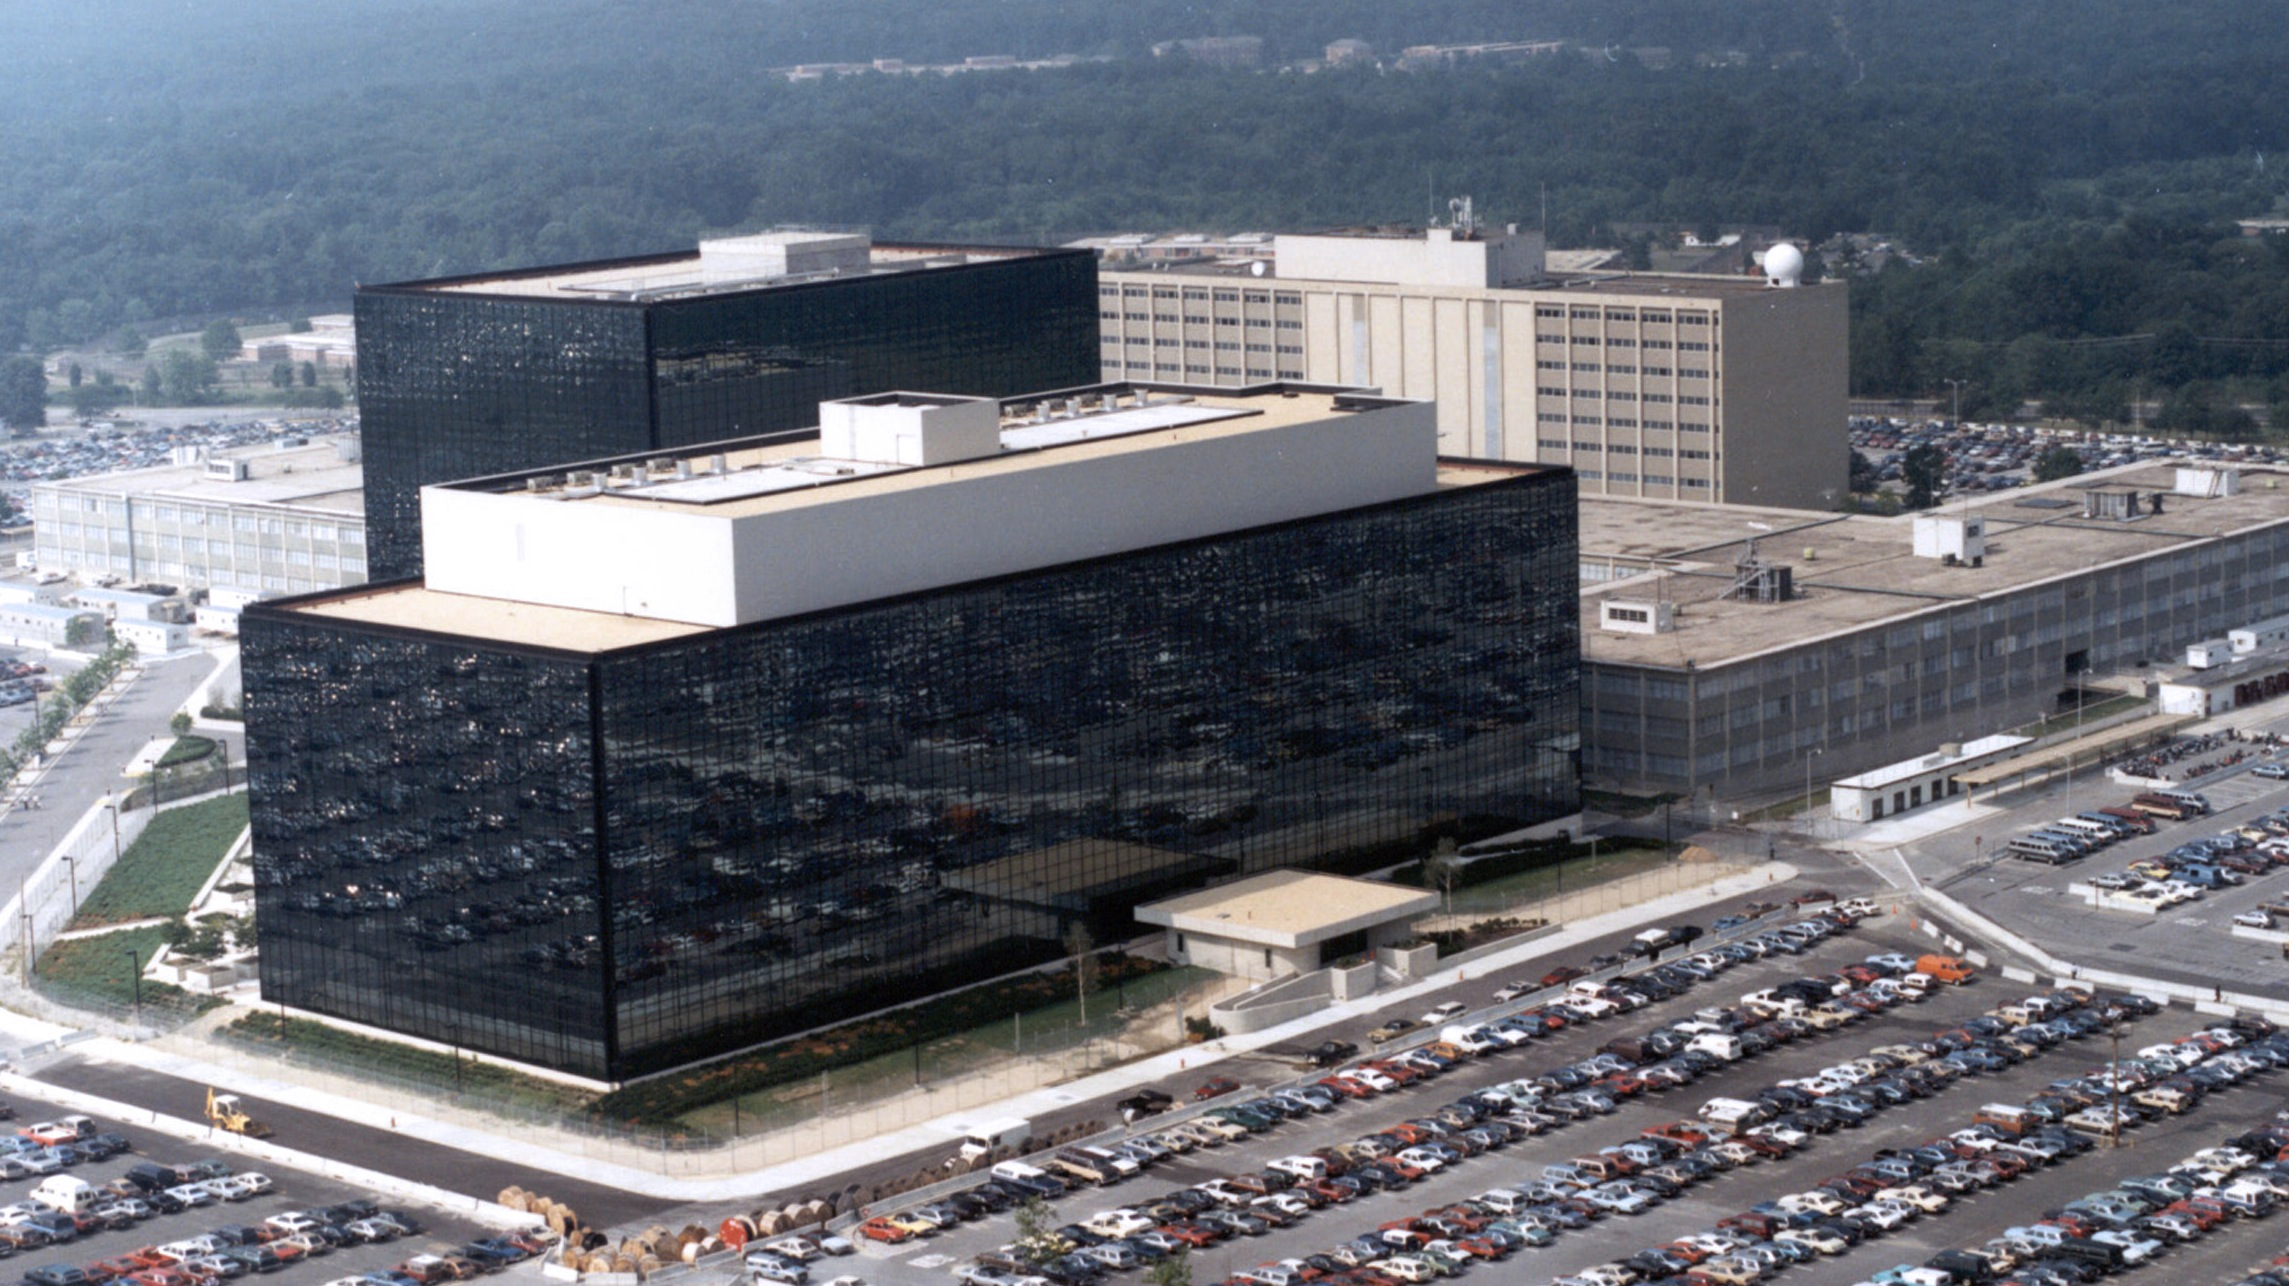 Nsa Said To Have Experimented With Location Gathering Methods